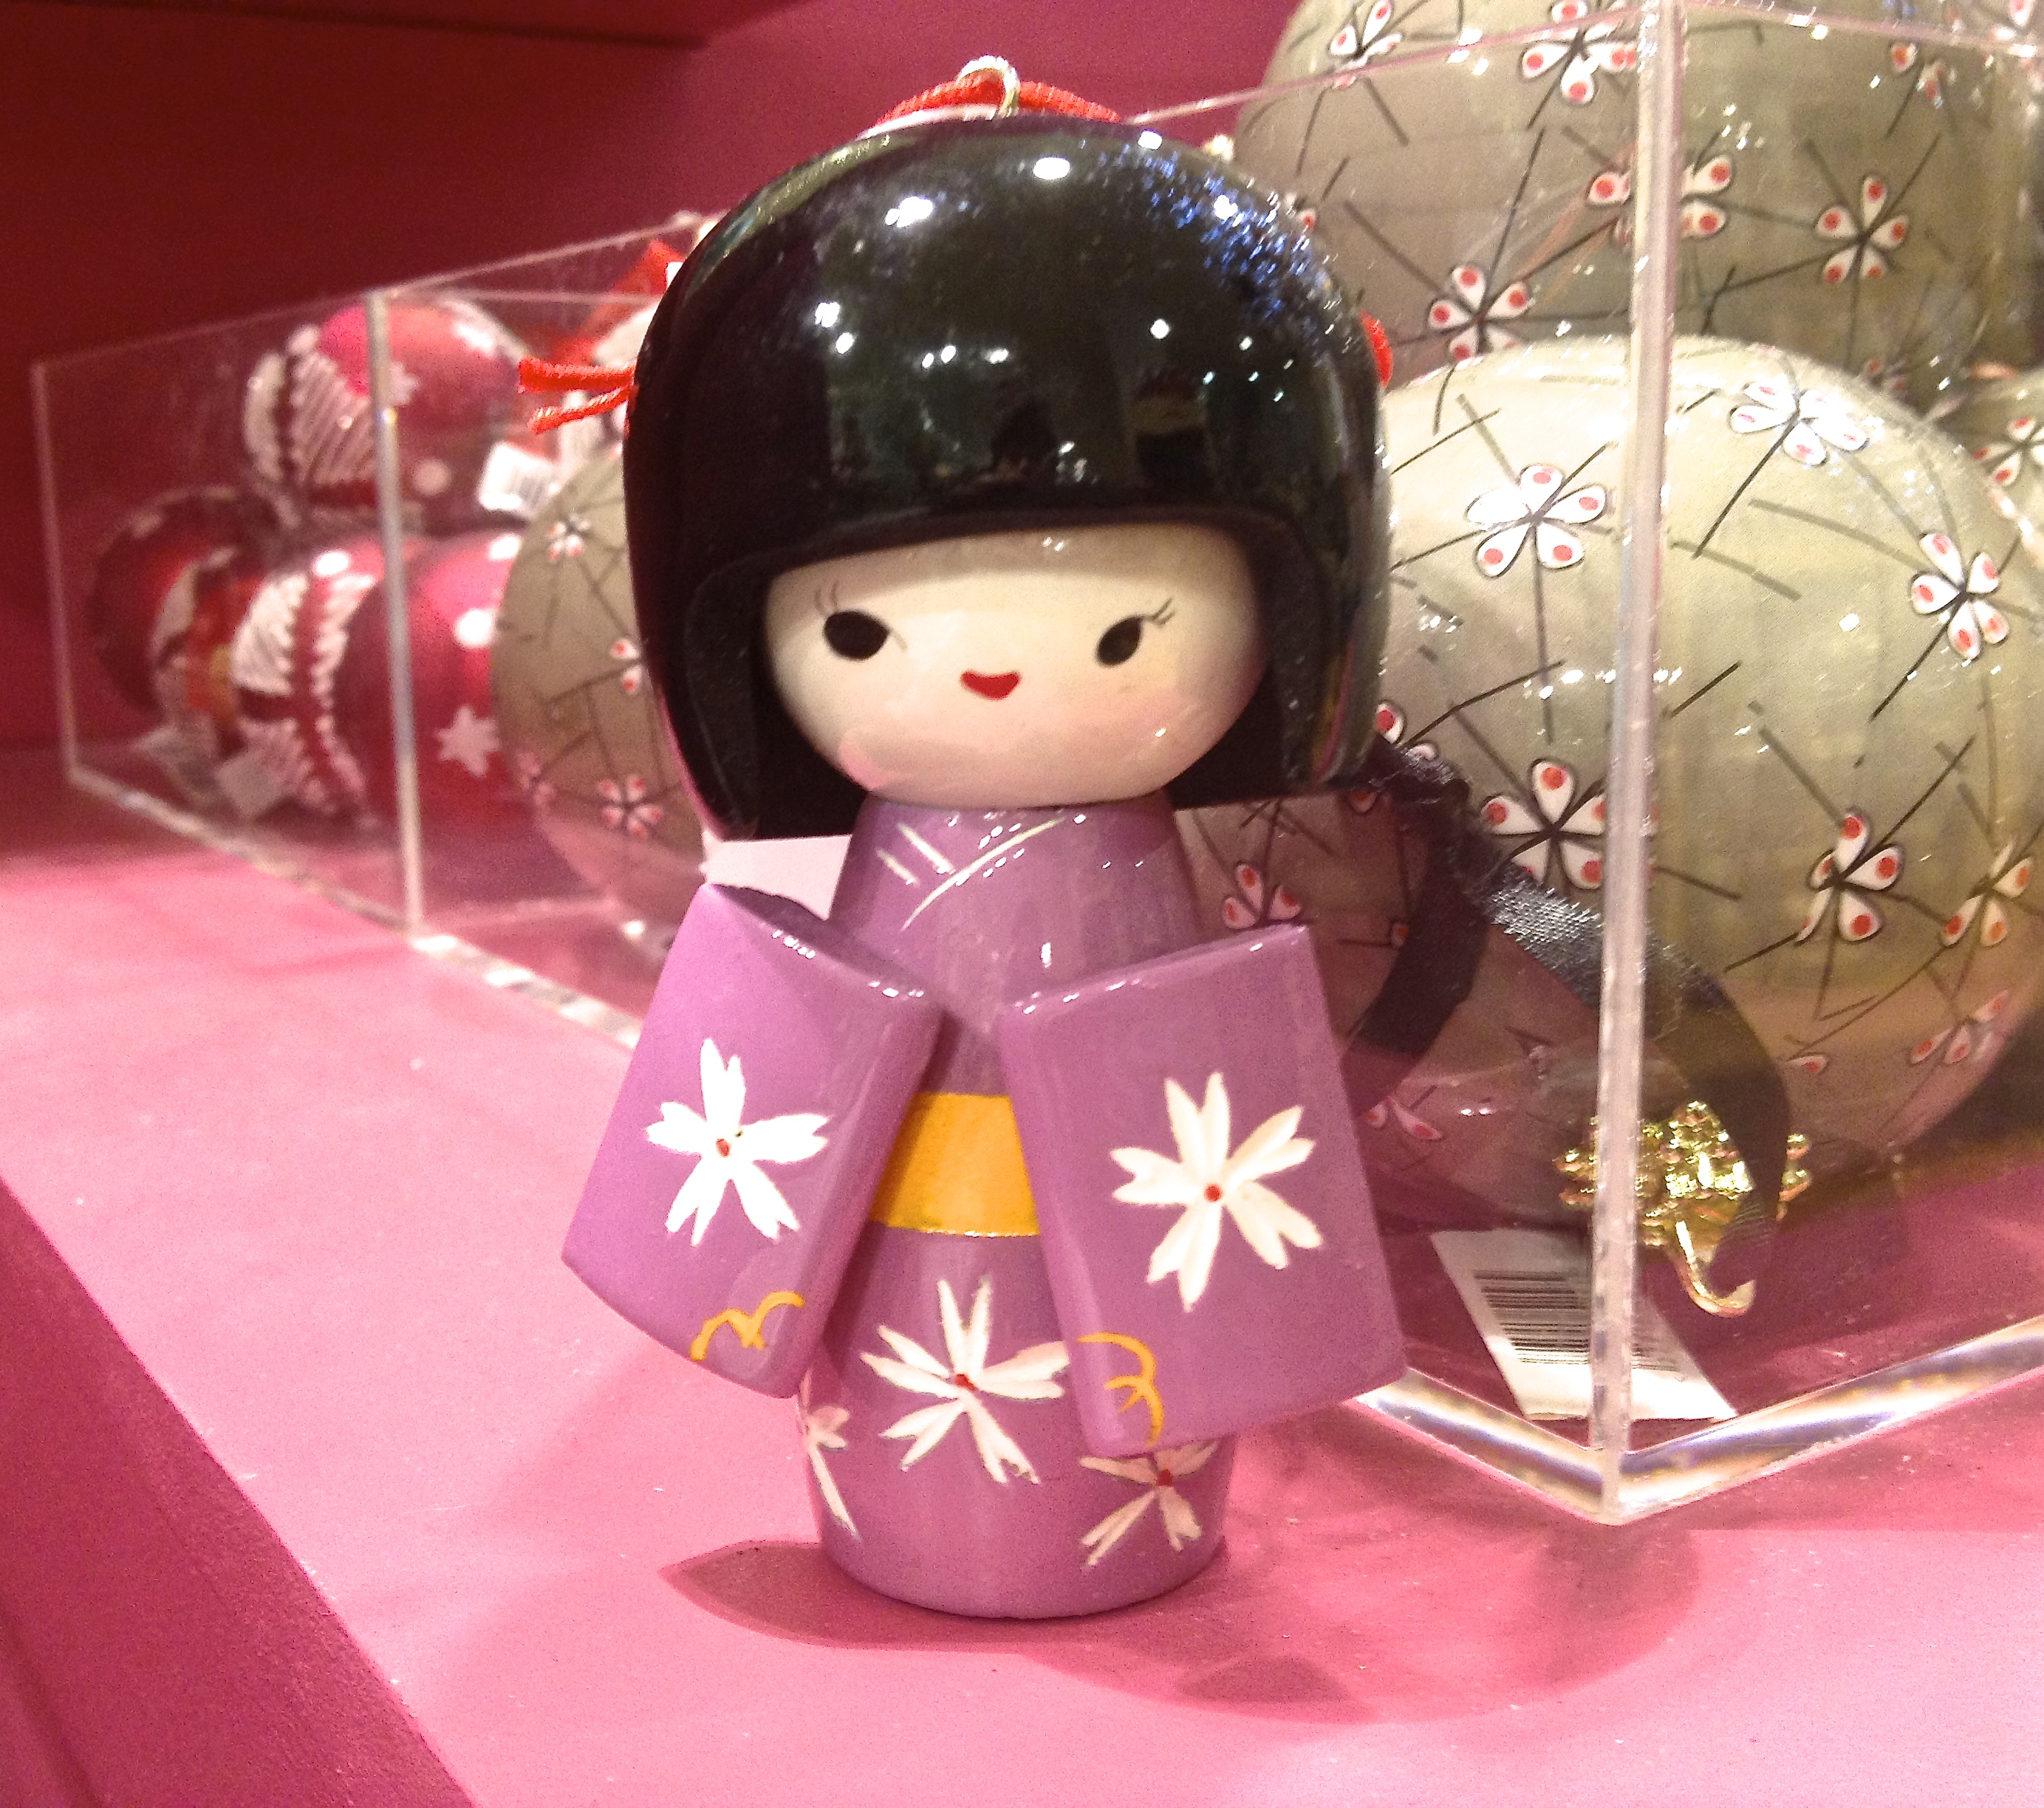 Japanese Christmas Tree Ornaments.Festive Winter Goods For This Holiday Season Tokyo Creative